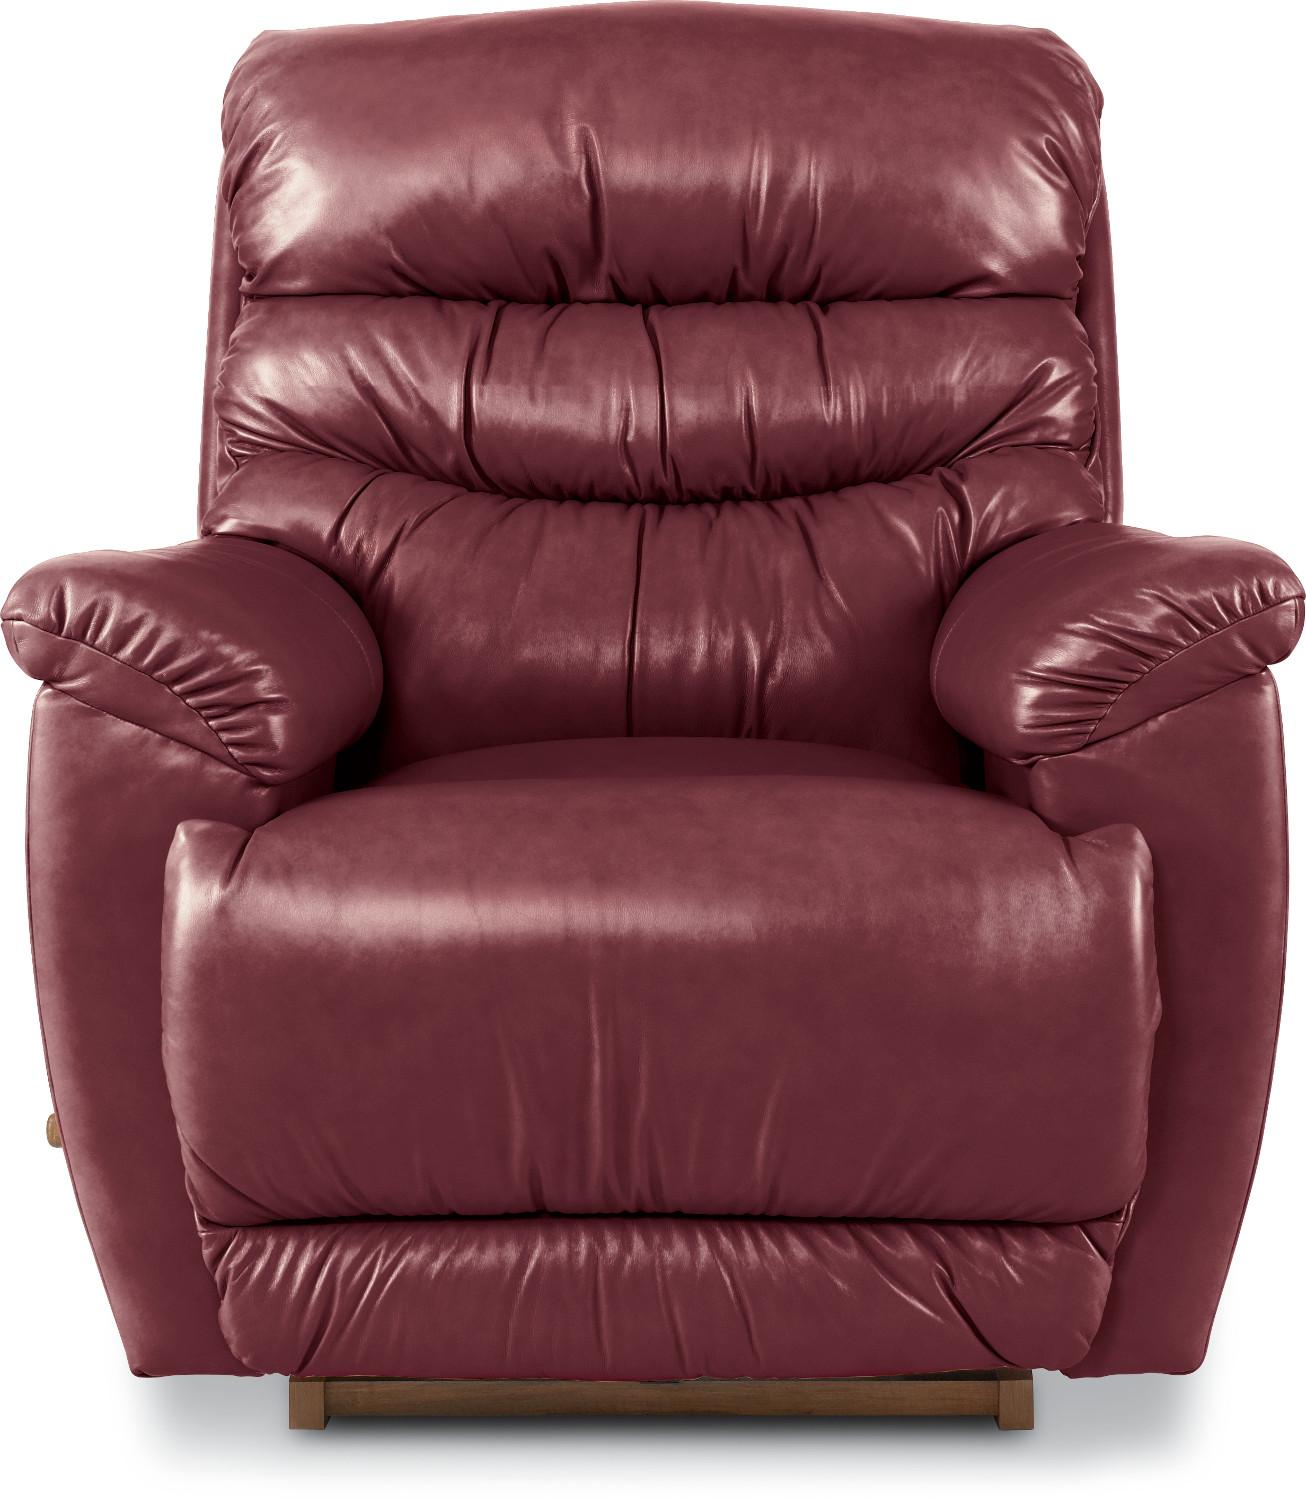 Reclining Rocking Chair Recliners Joshua Reclina Rocker Reclining Chair By La Z